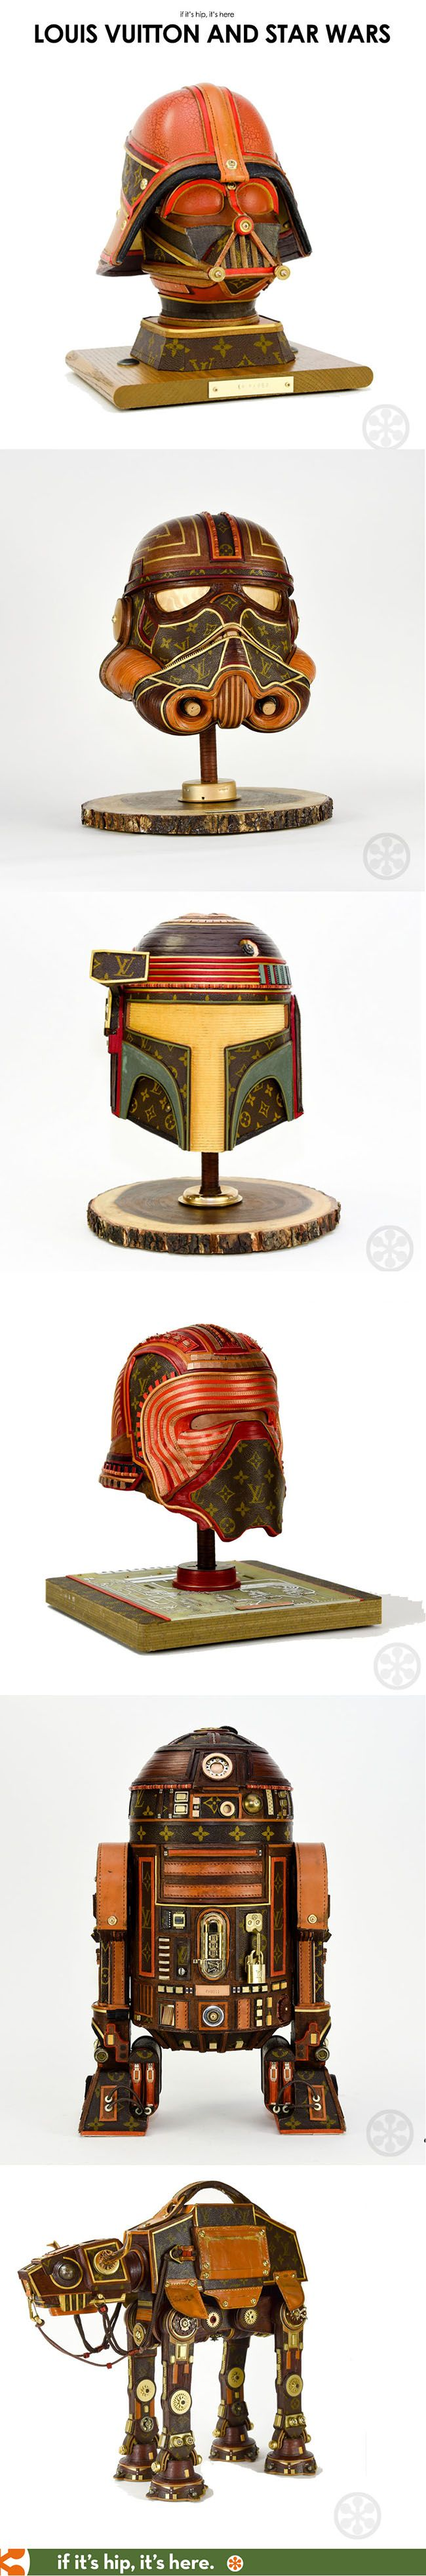 These are phenonmenal. Learn all about them at http://www.ifitshipitshere.com/louis-vuitton-star-wars-sculptures/  #louisvuitton #starwars #gabrieldishaw